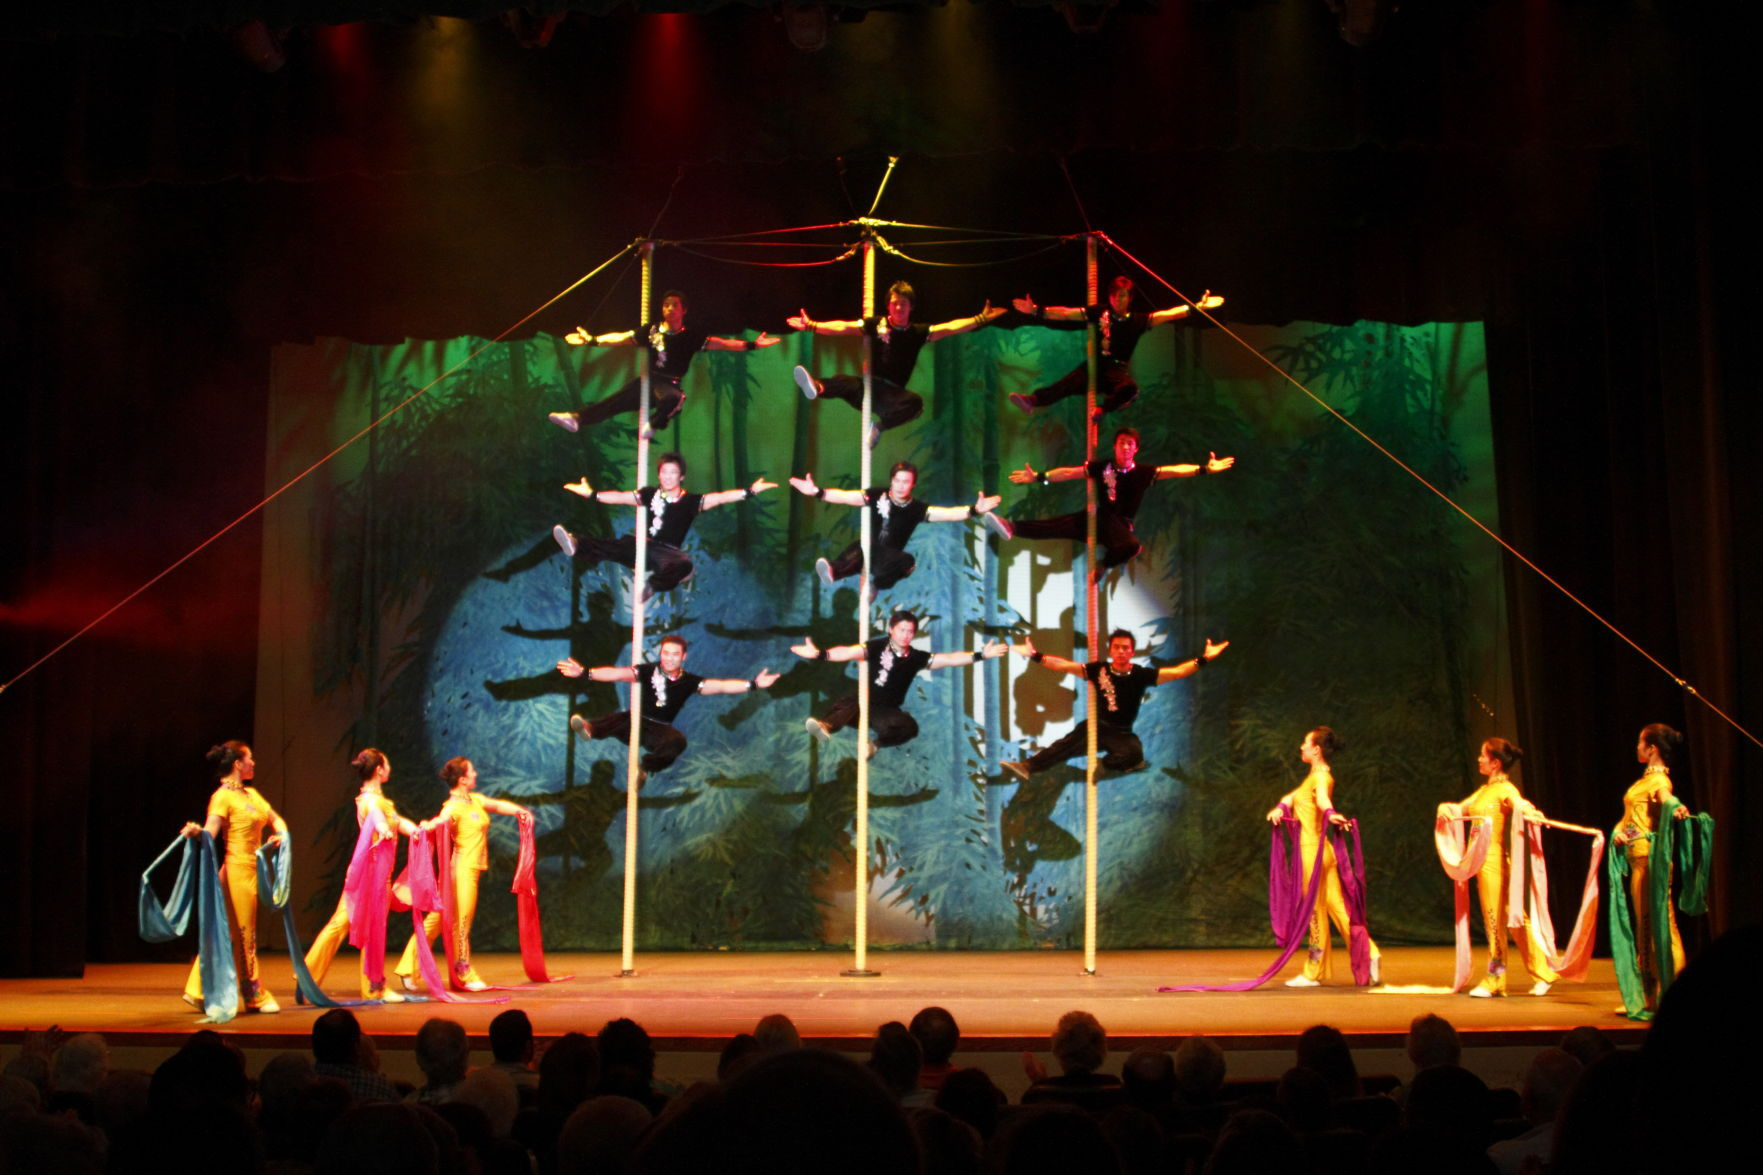 Peking Acrobats Scheduled To Perform At Brigham Young University